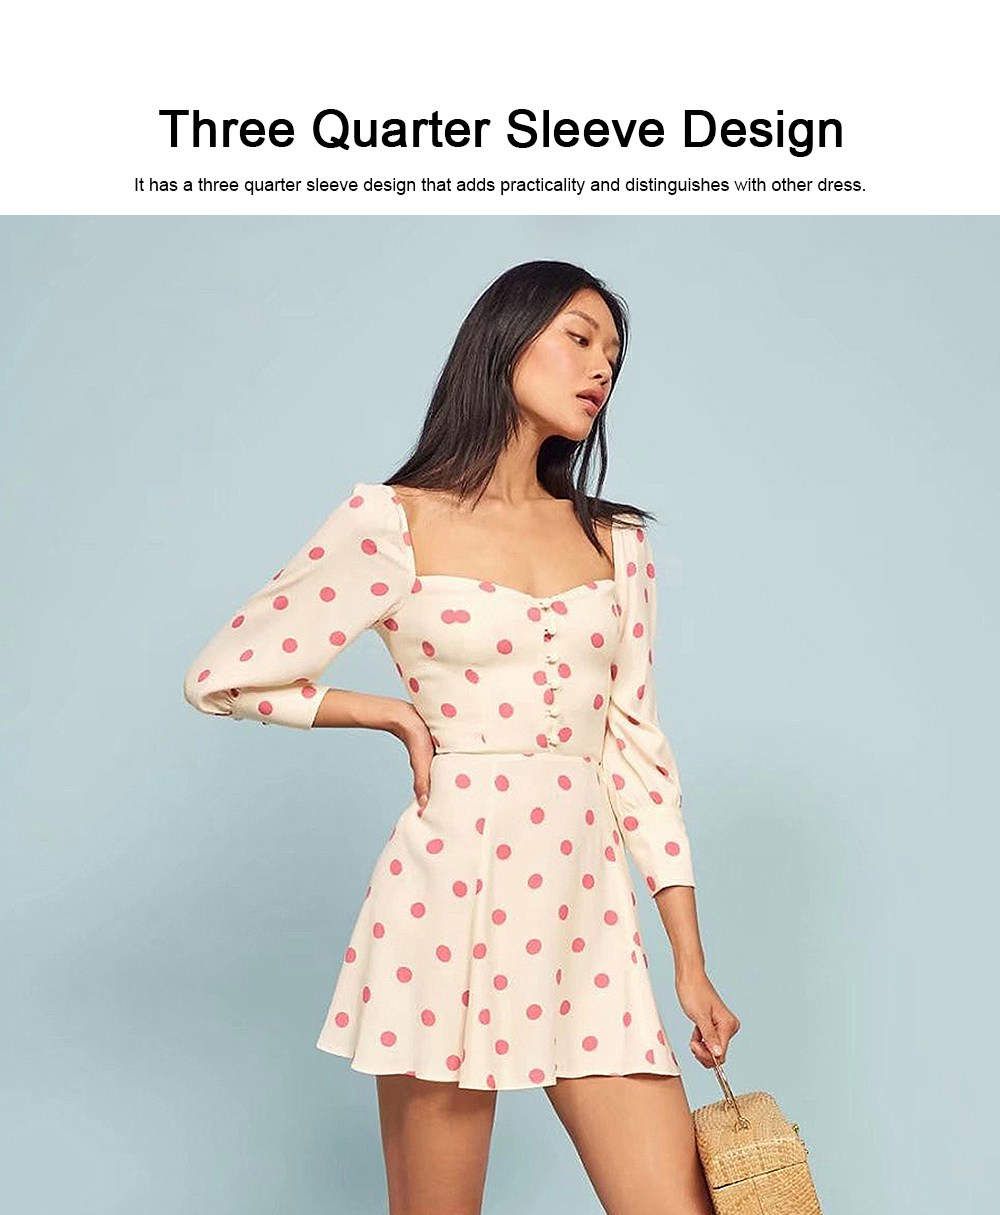 Polka Dot Dress for Women Three Quarter Sleeve Collect Waist Fine Linen Square-cut Collar Short Skirt 2019 4